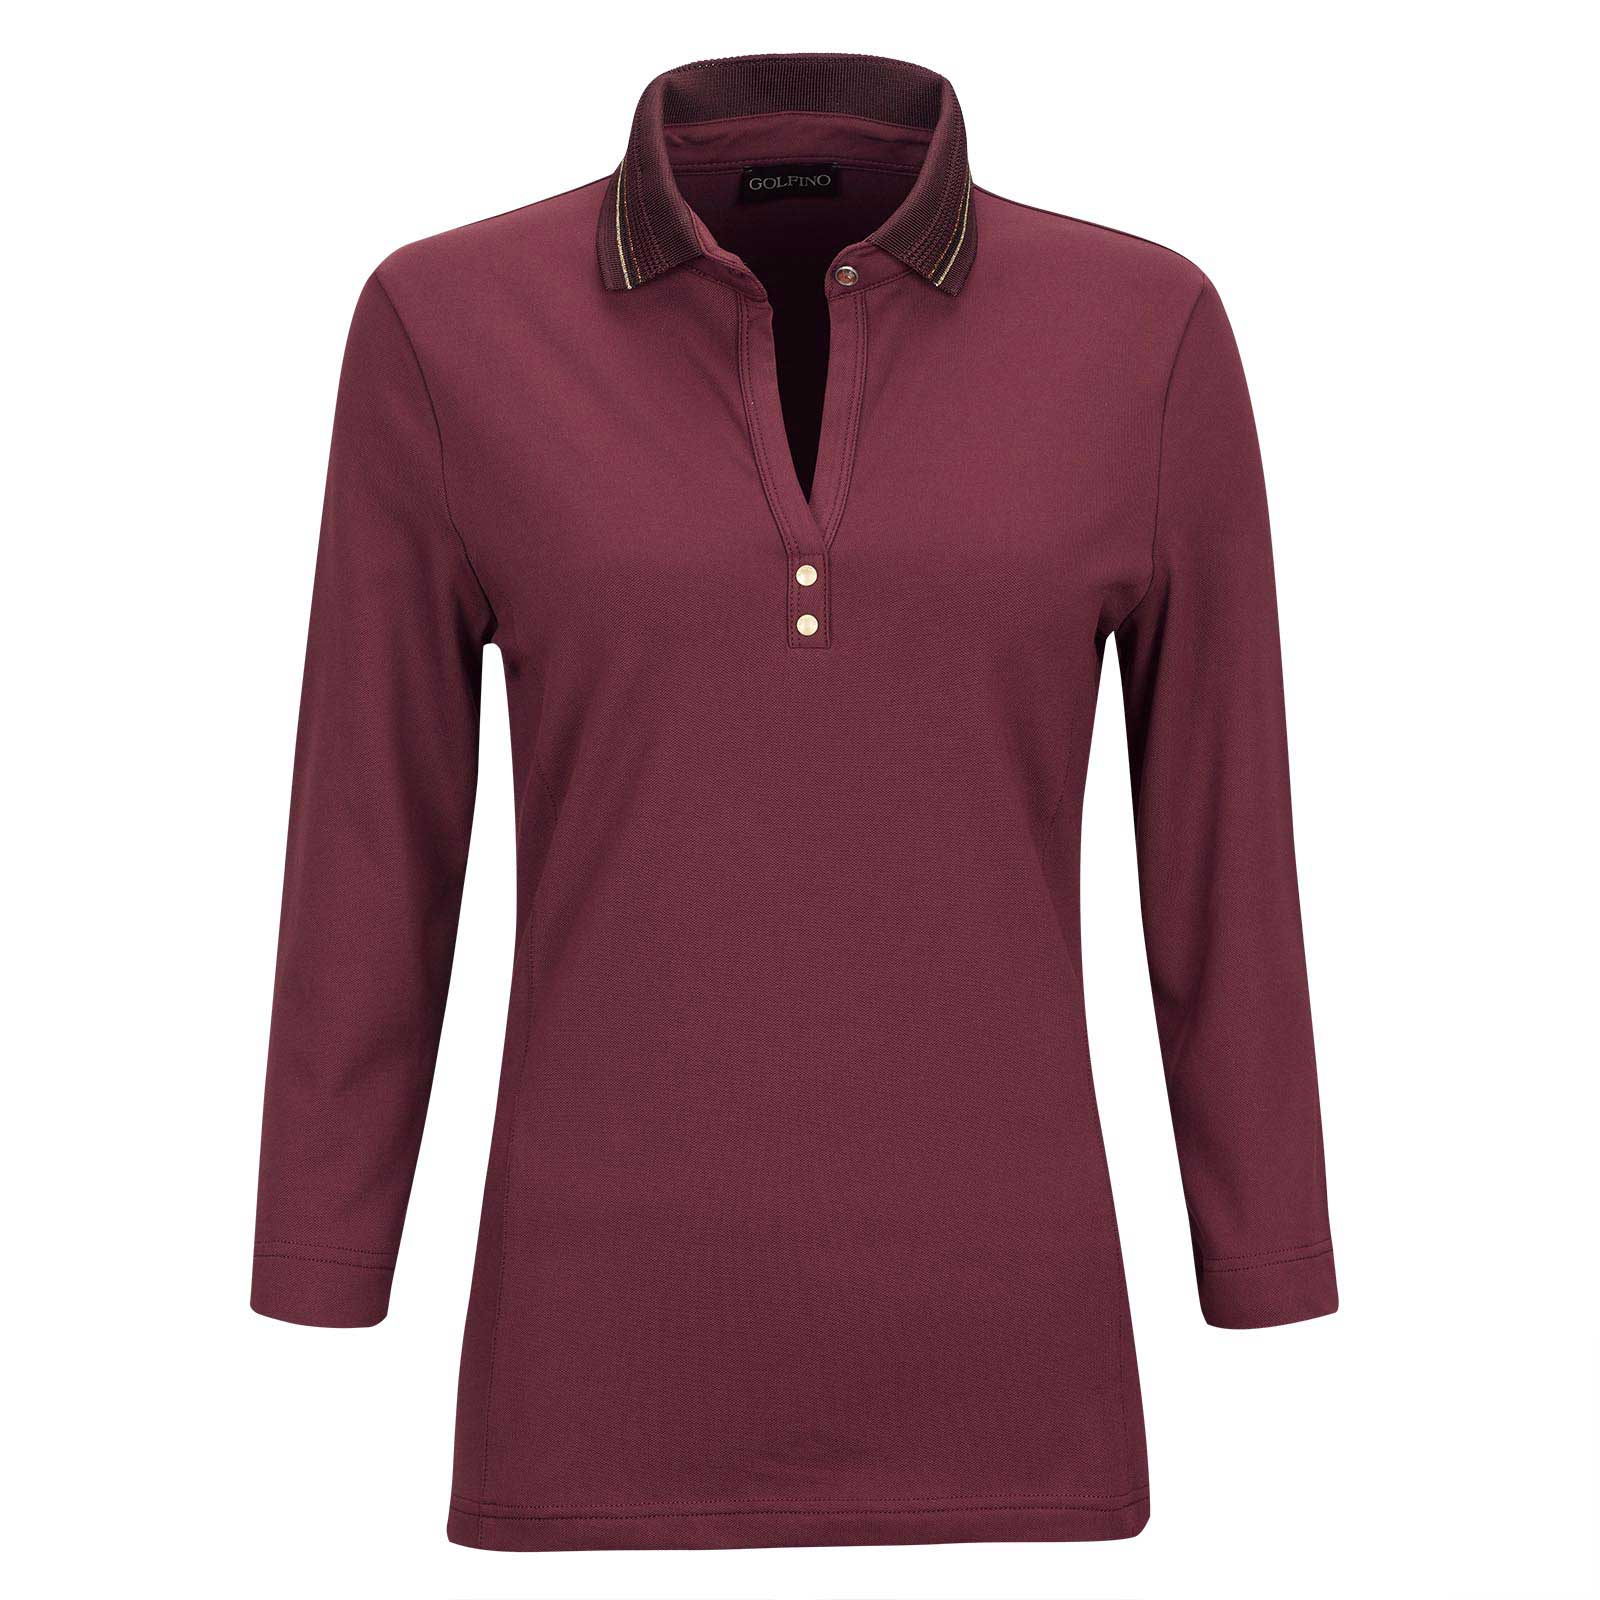 Ladies' 3/4 sleeve golf polo with Sun Protection function and eye-catching neckline